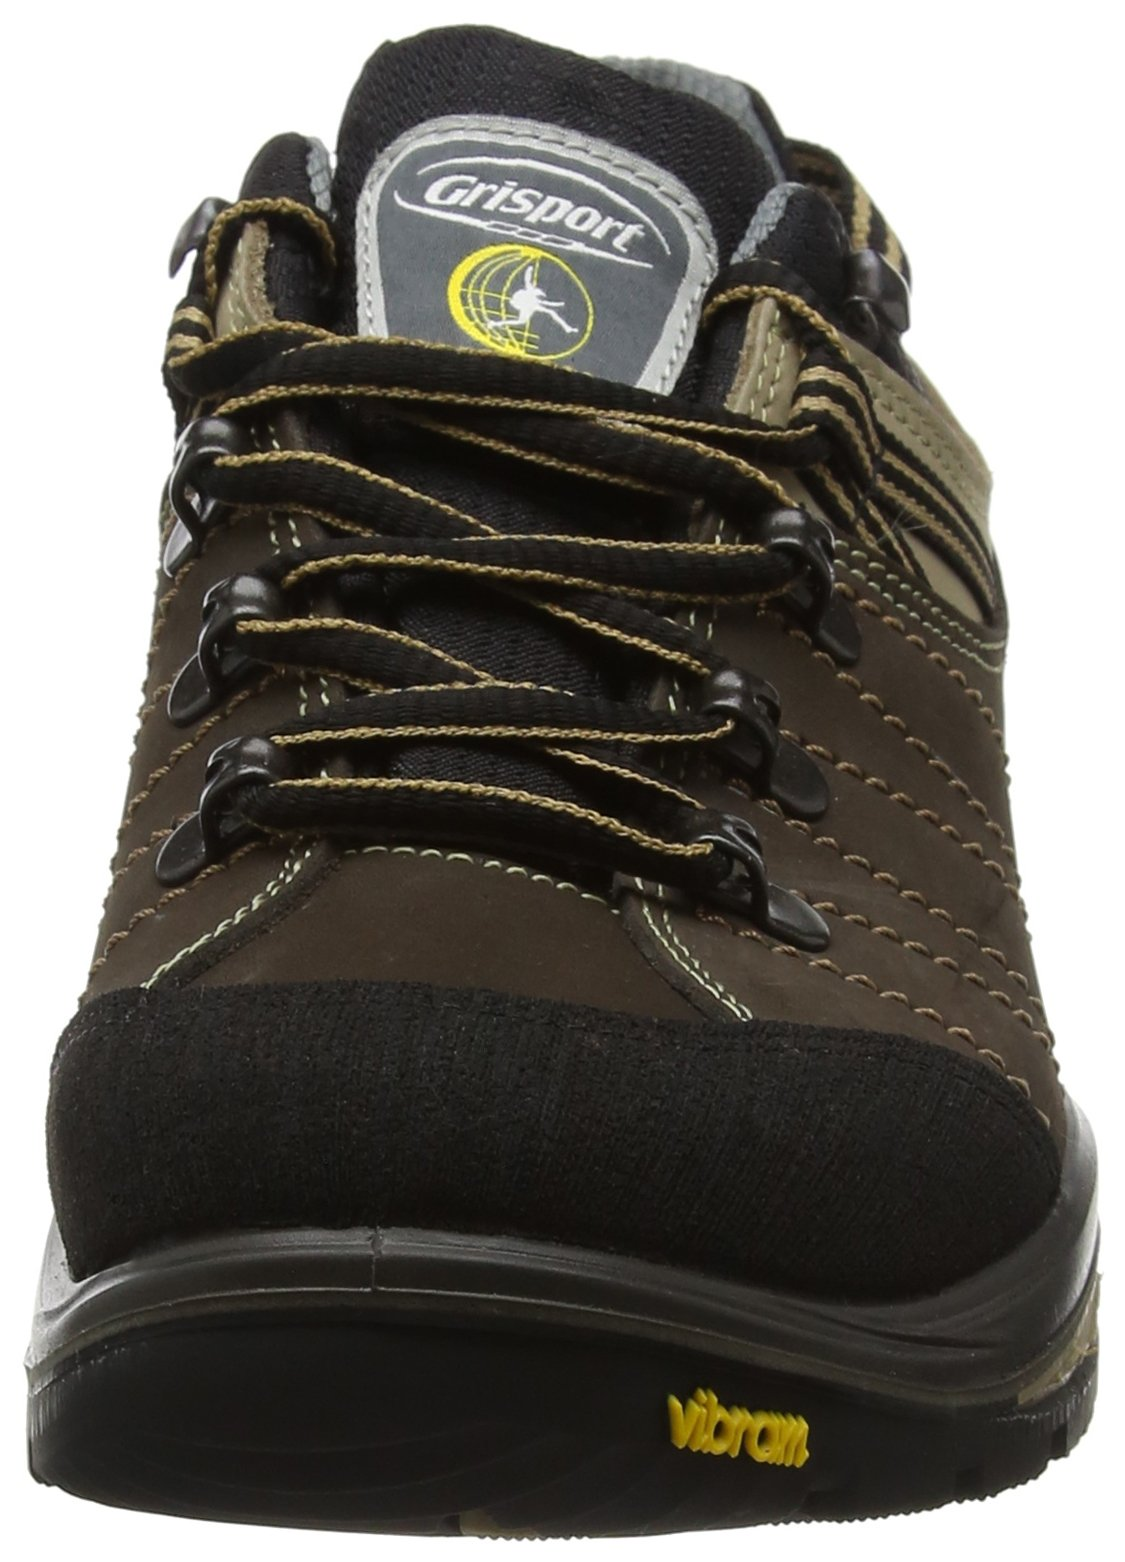 Grisport Unisex Adult Rogue Low Rise Hiking Boots